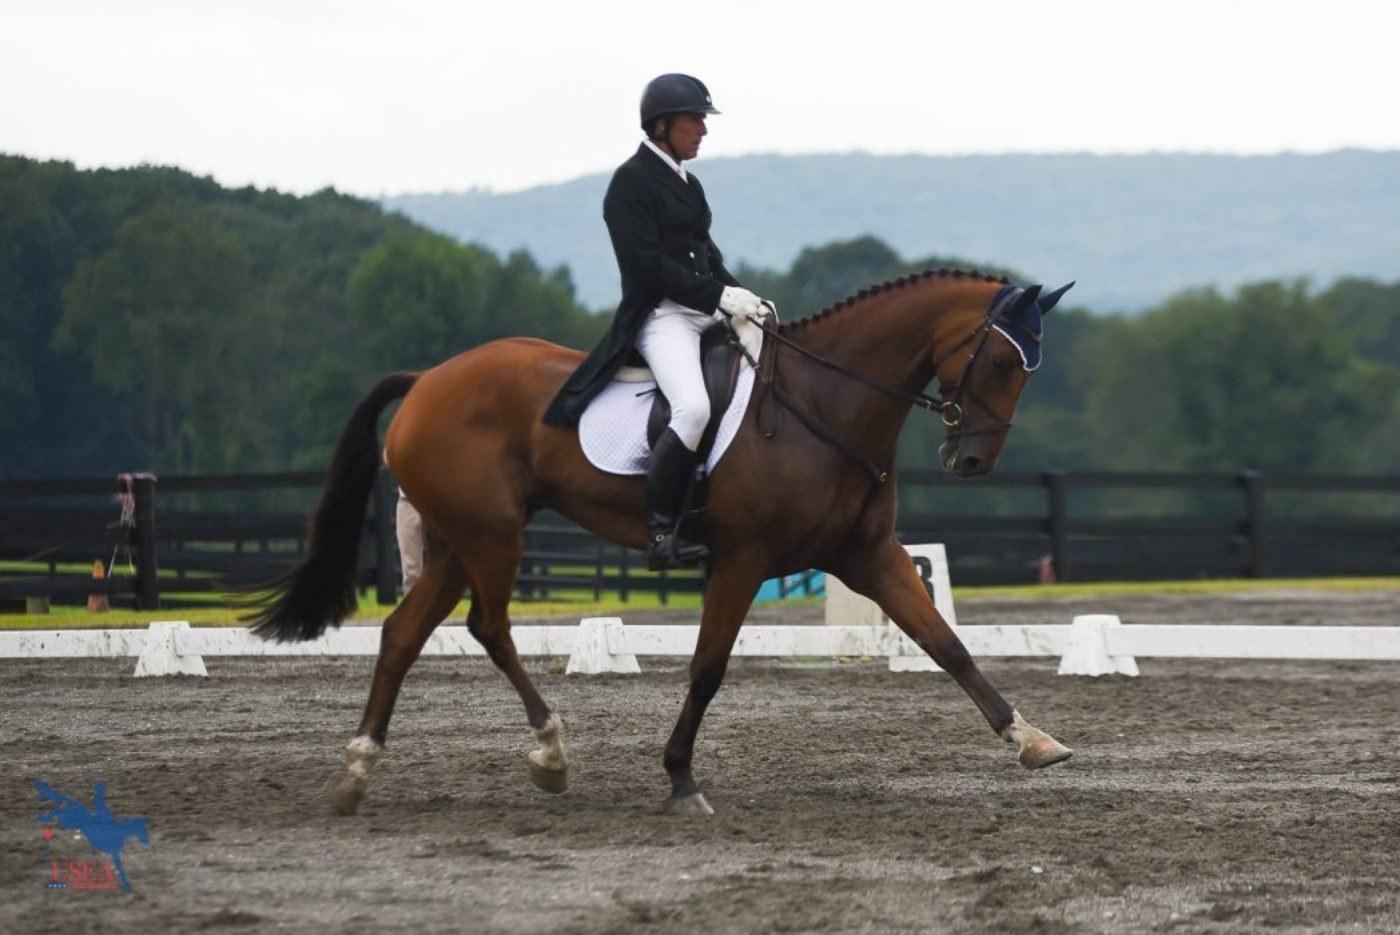 13thT - Dr. Kevin Keane and Sportsfield Candy - 35.2